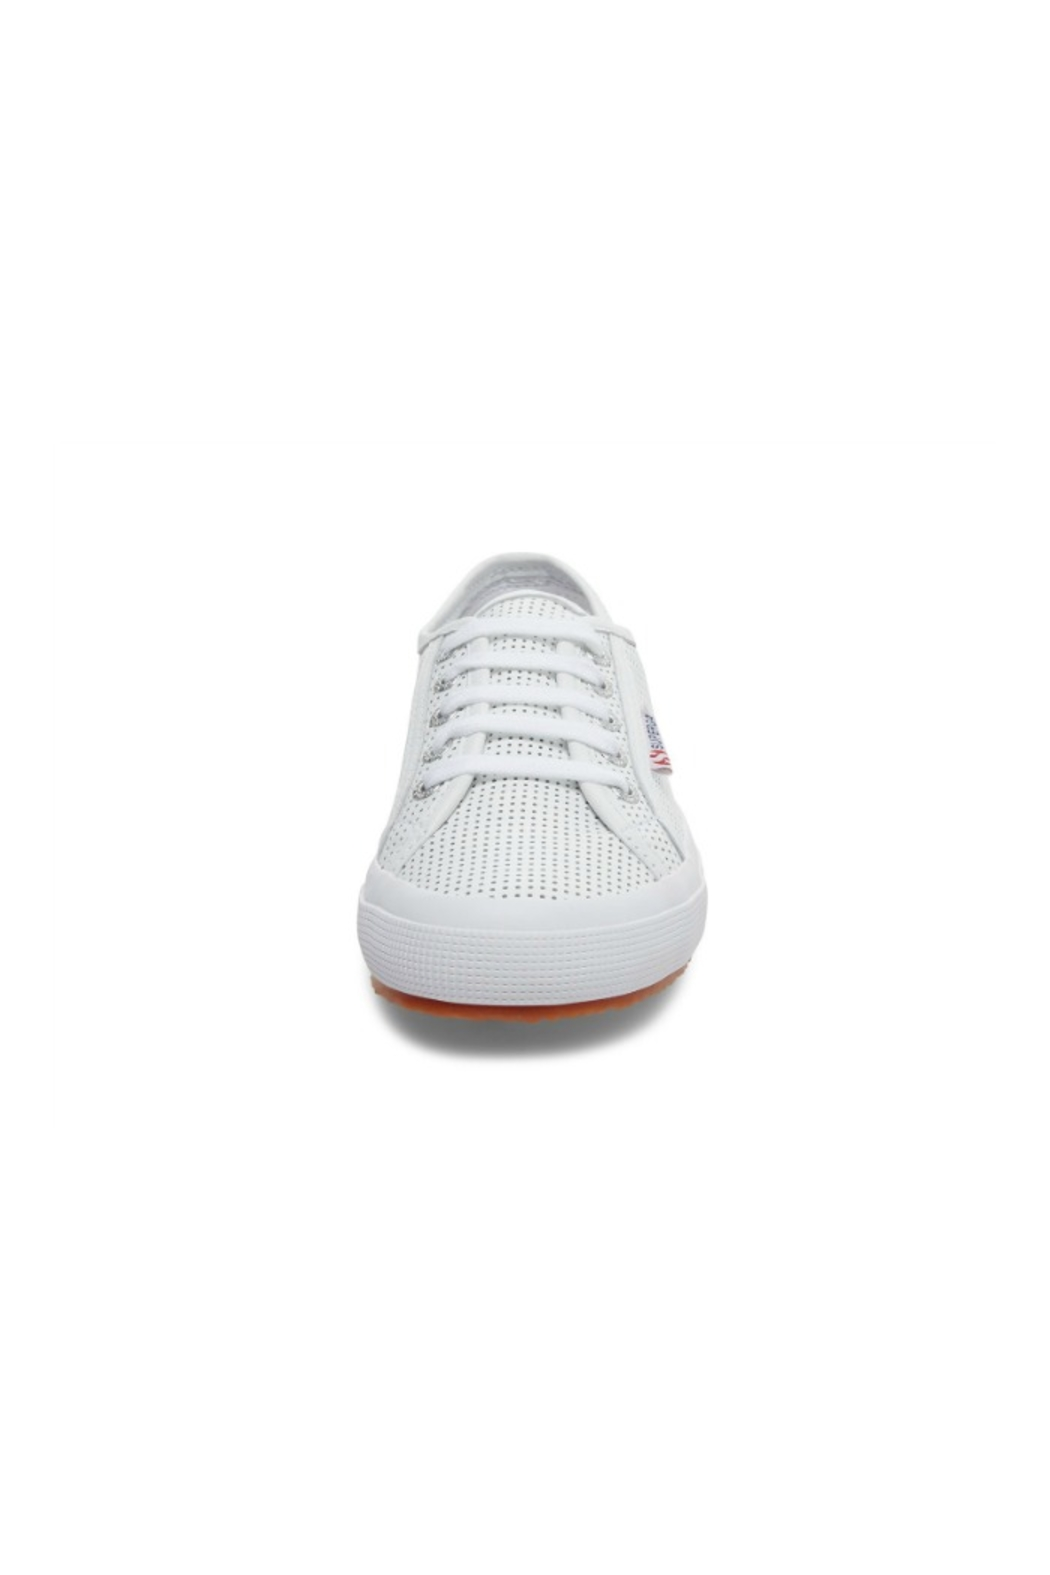 Superga Women's 2750 White Perforated Sneaker - Side Cropped Image